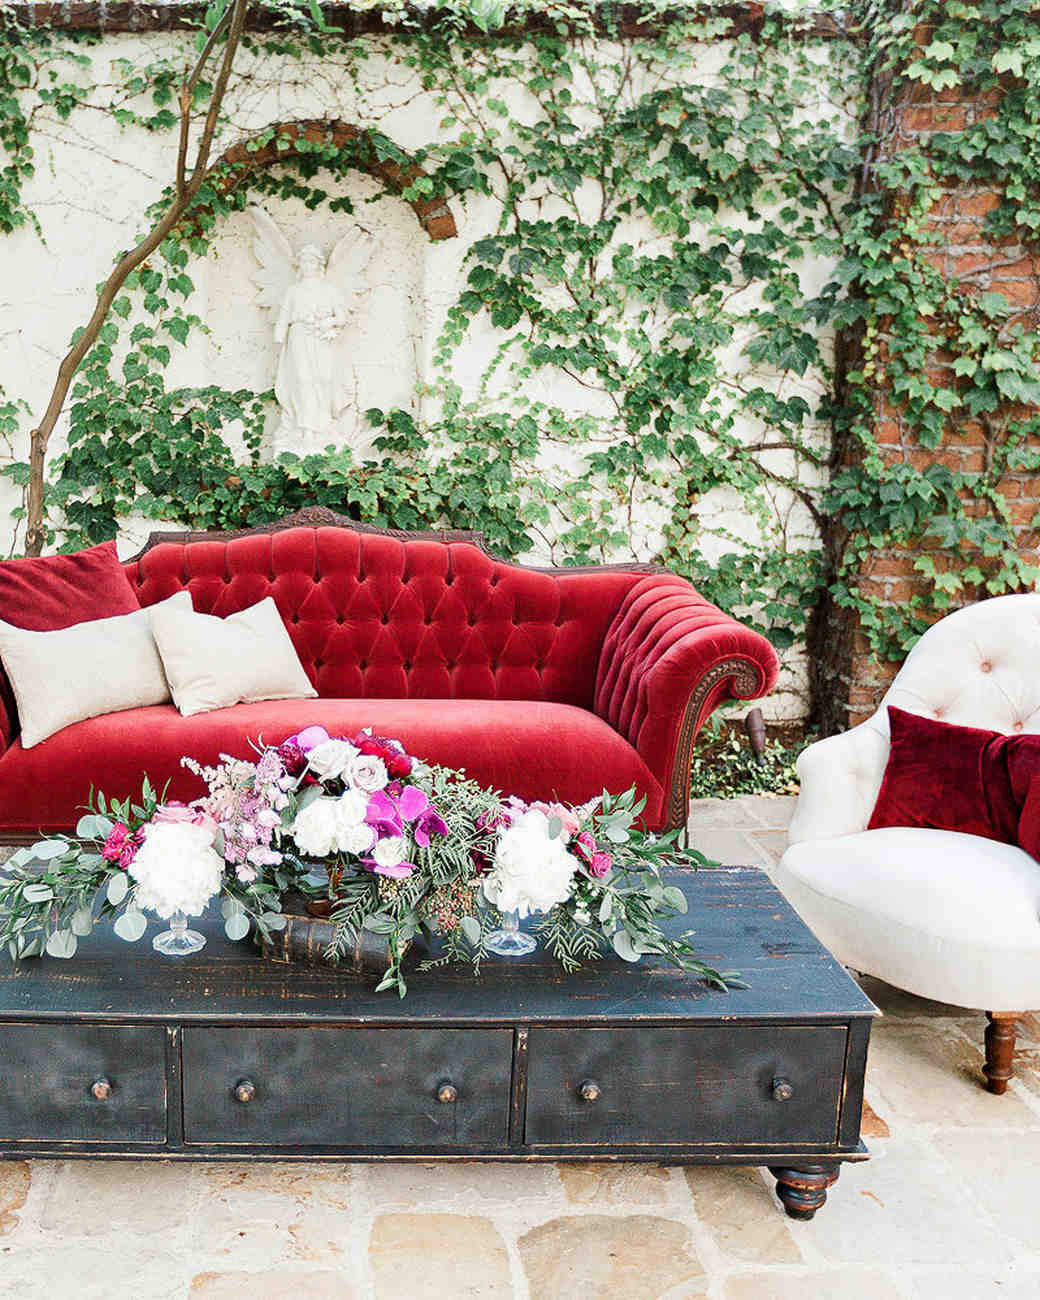 Outdoor Wedding Furniture. Exellent Wedding Vintage Red And White  Upholstered Furniture Inside Outdoor Wedding A